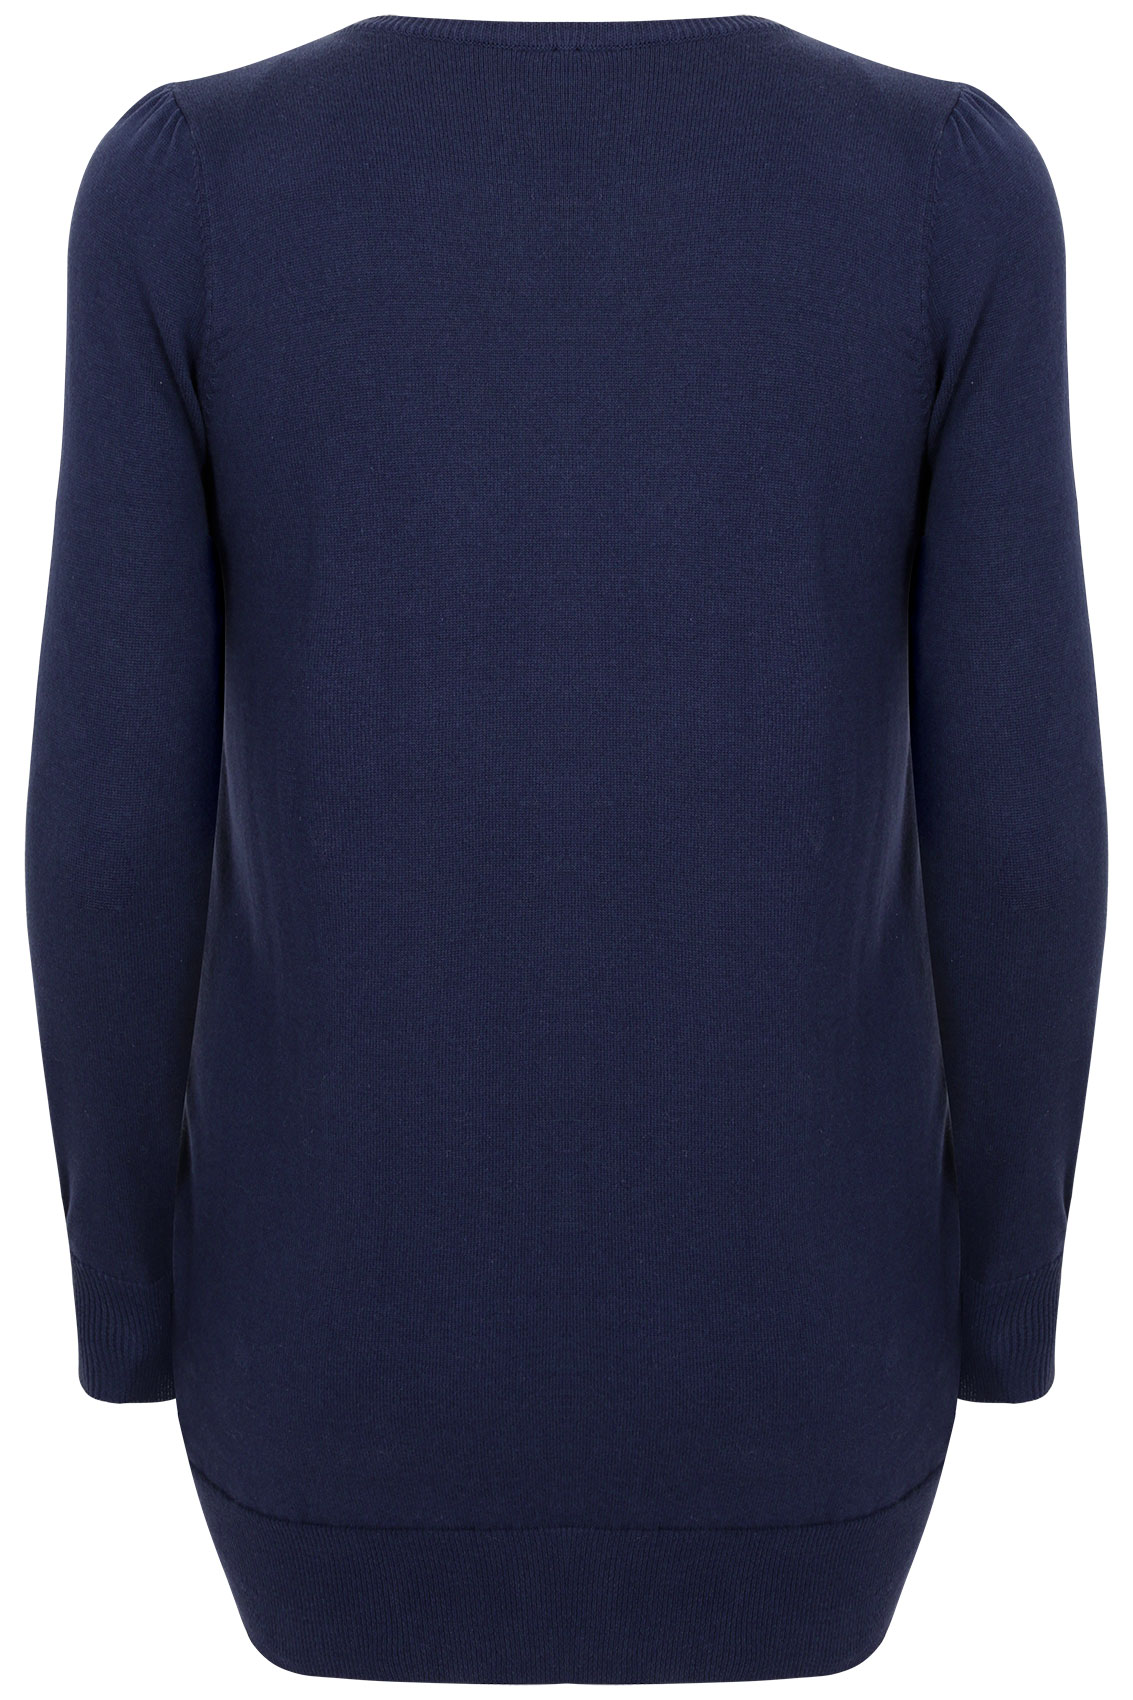 Our cosy navy funnel neck knitted jumper is a winter essential for your wardrobe. 72% Acrylic, 26% Polyester, 2% Elastane; Machine washable; Sizes: 4, 6, 8, 10, 12, 14,